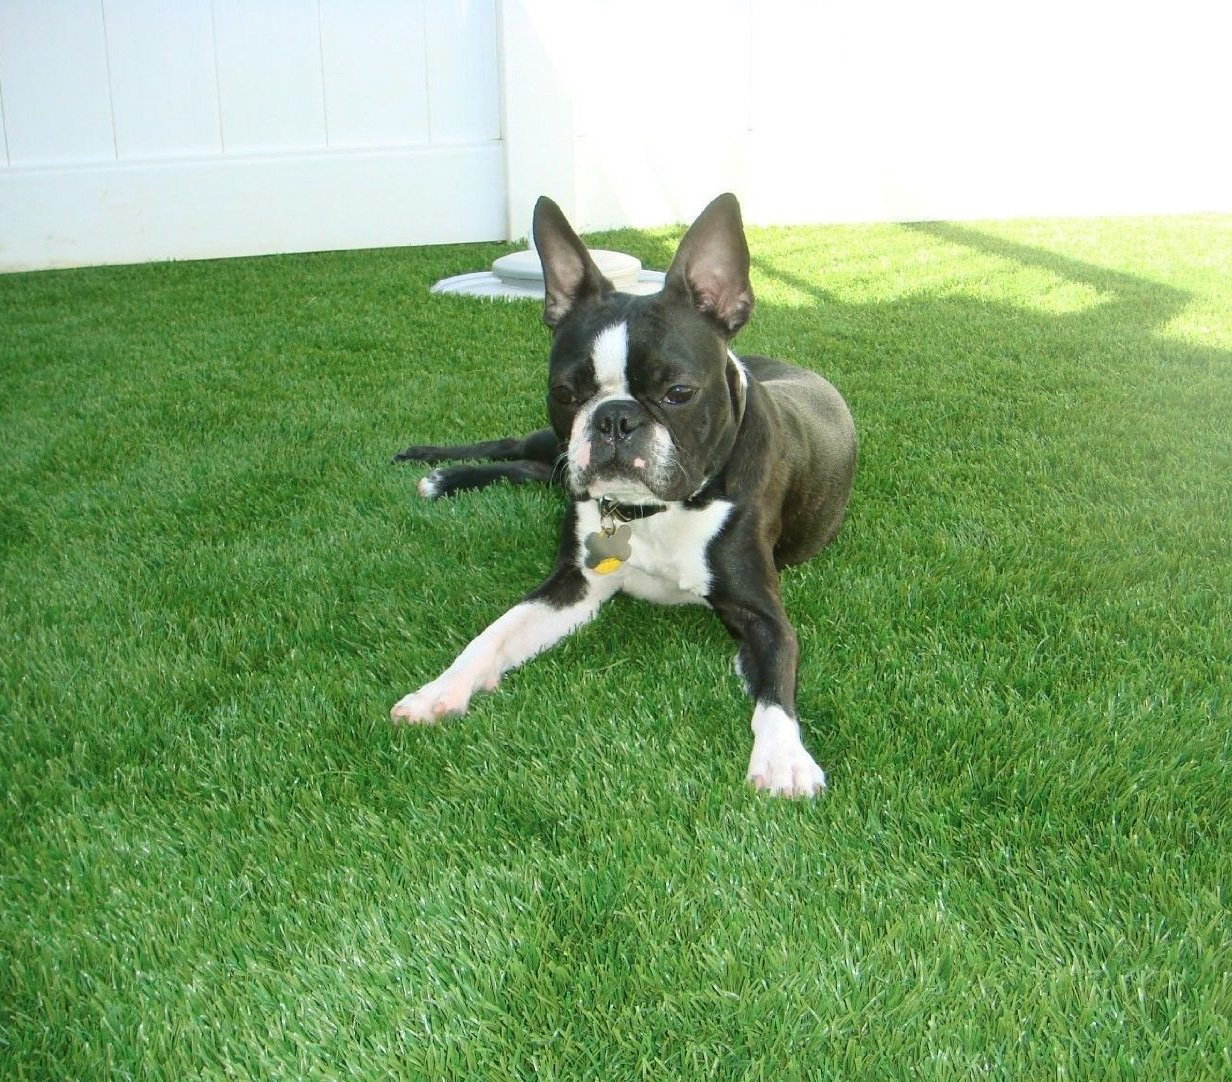 Artificial lawn Premium Synthetic Turf Fake Grass Indoor Outdoor Landscape Pet Dog Area, More Than 30 (3.3' x 5')